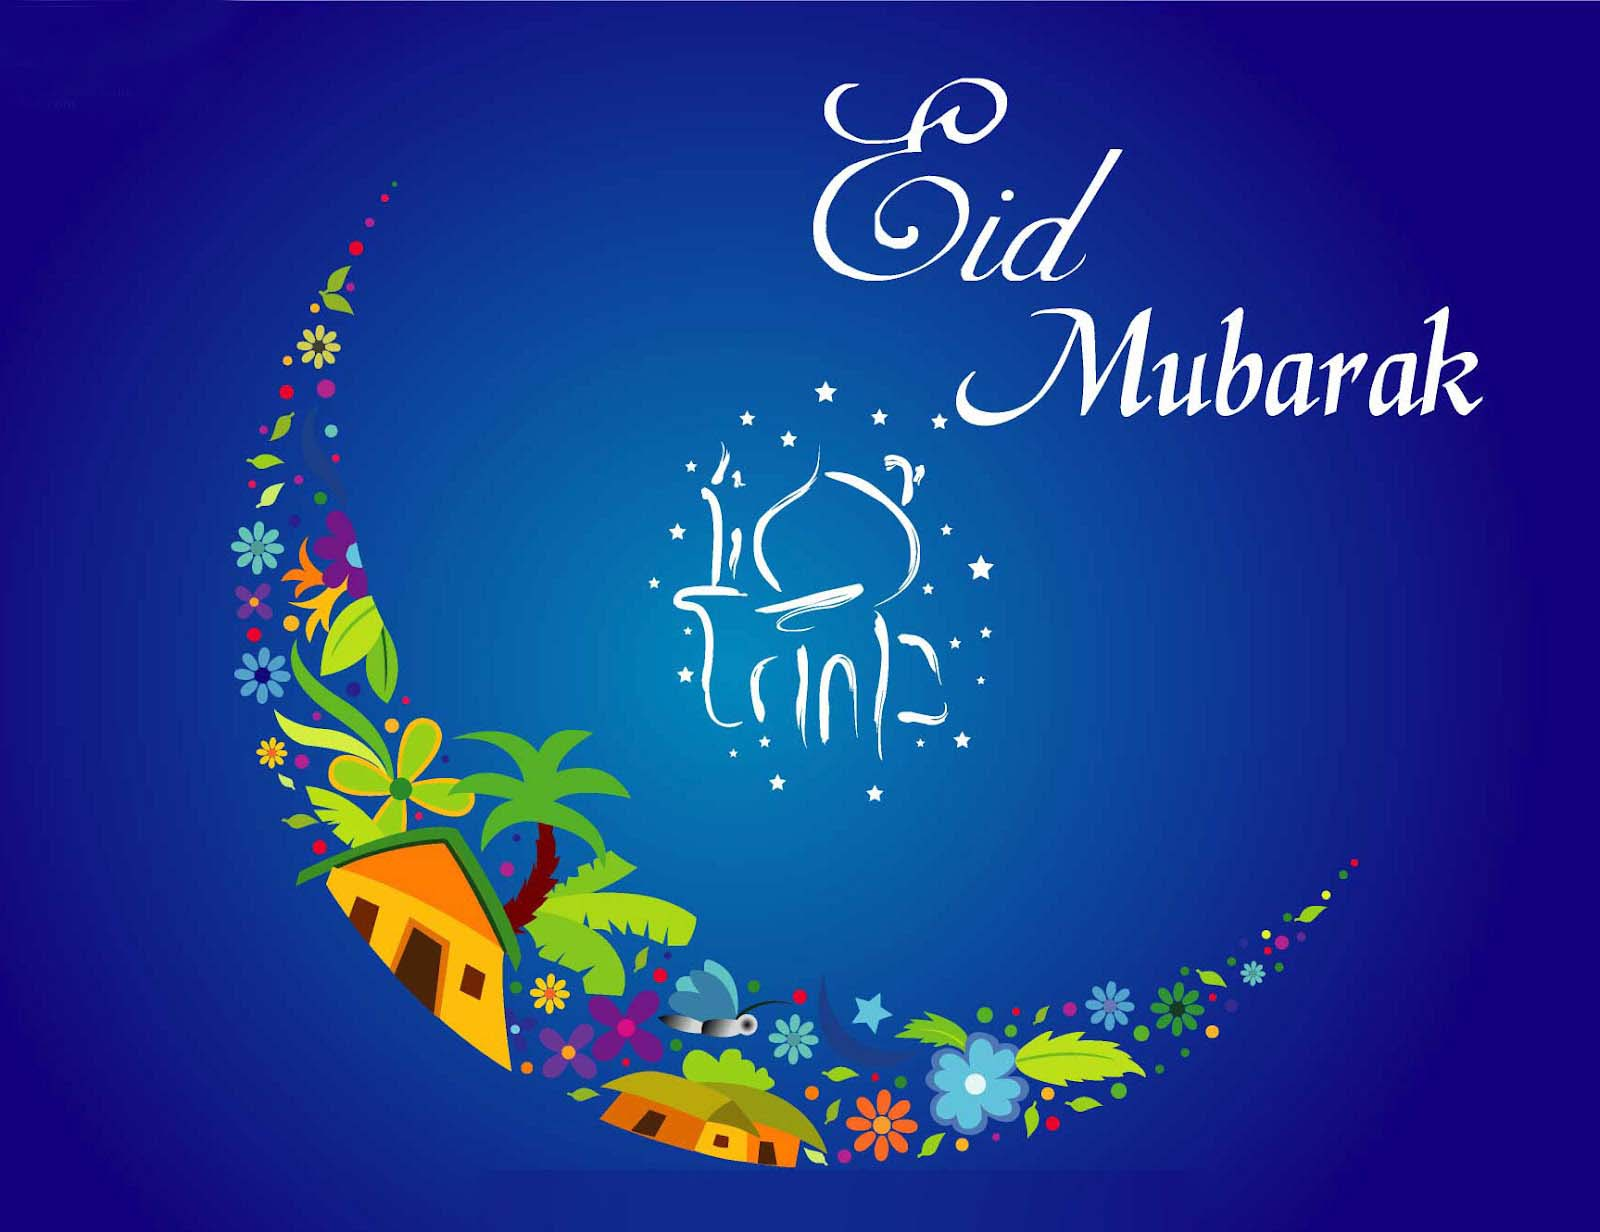 Eid-mubarak-2013-Muslim-015-HD-Wallpaper